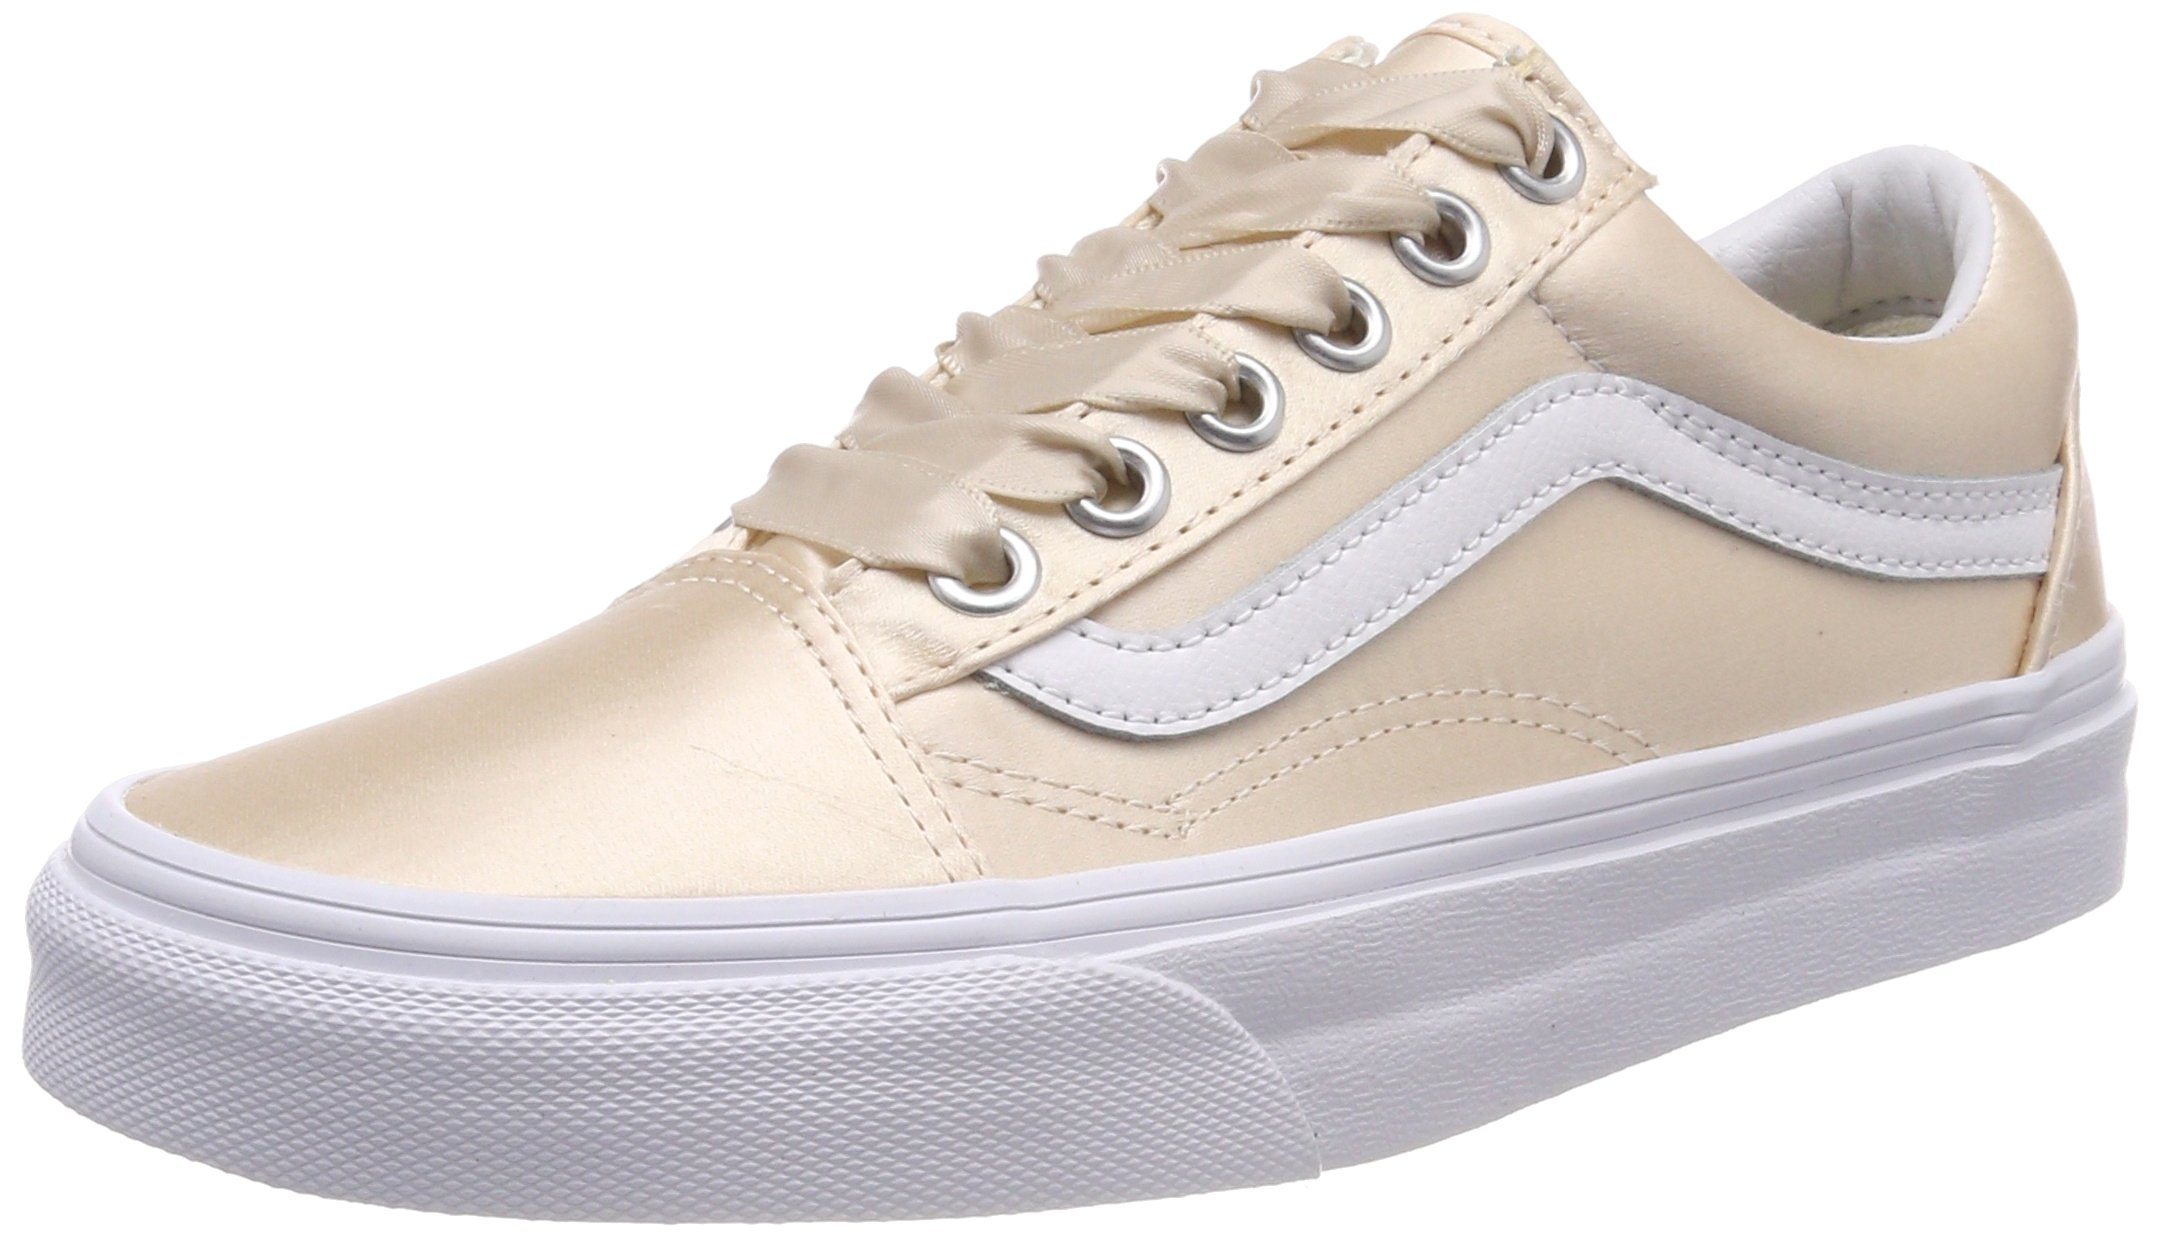 Vans Old Skool, Women's Trainers Pink - 71LWDtJUtuL - Vans Old Skool, Women's Trainers